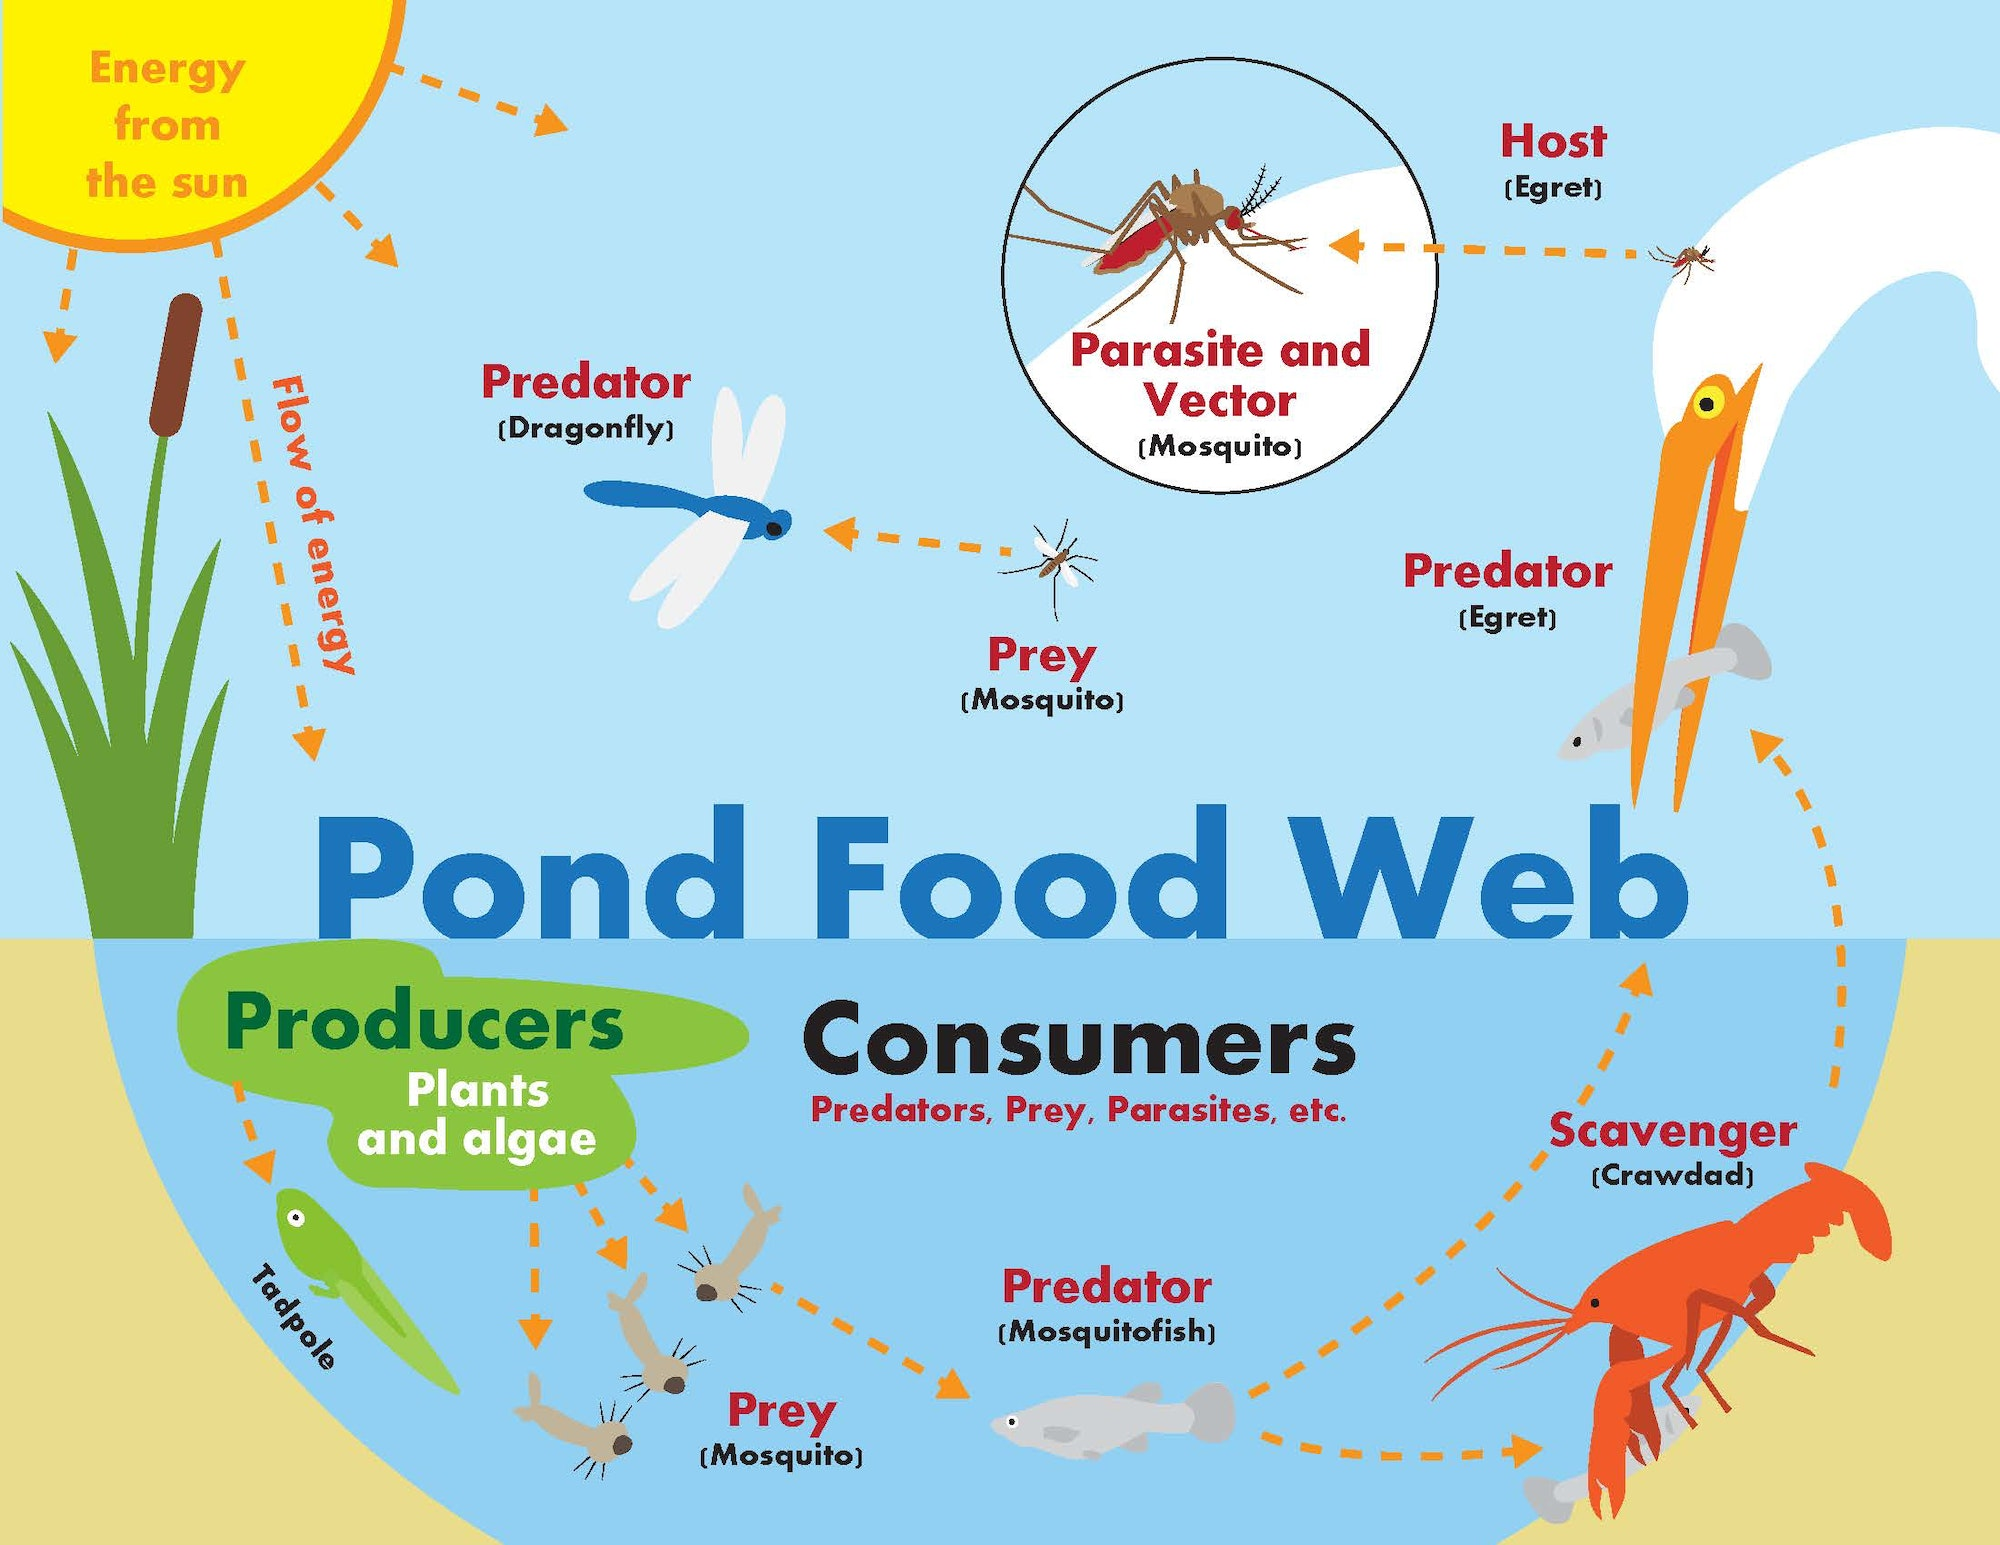 Food web diagram